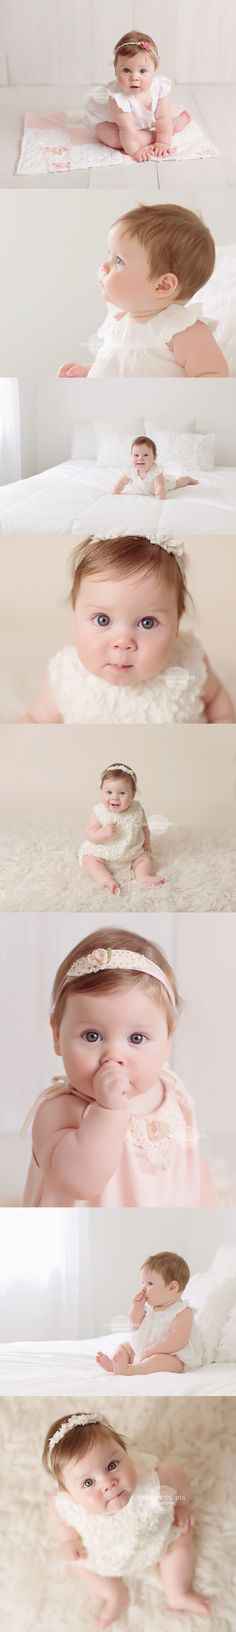 Baby Pictures! Los Angeles | Thousand Oaks | Woodland Hills | Agoura Hills Newborn Baby Photographer - Maxine Evans Photography